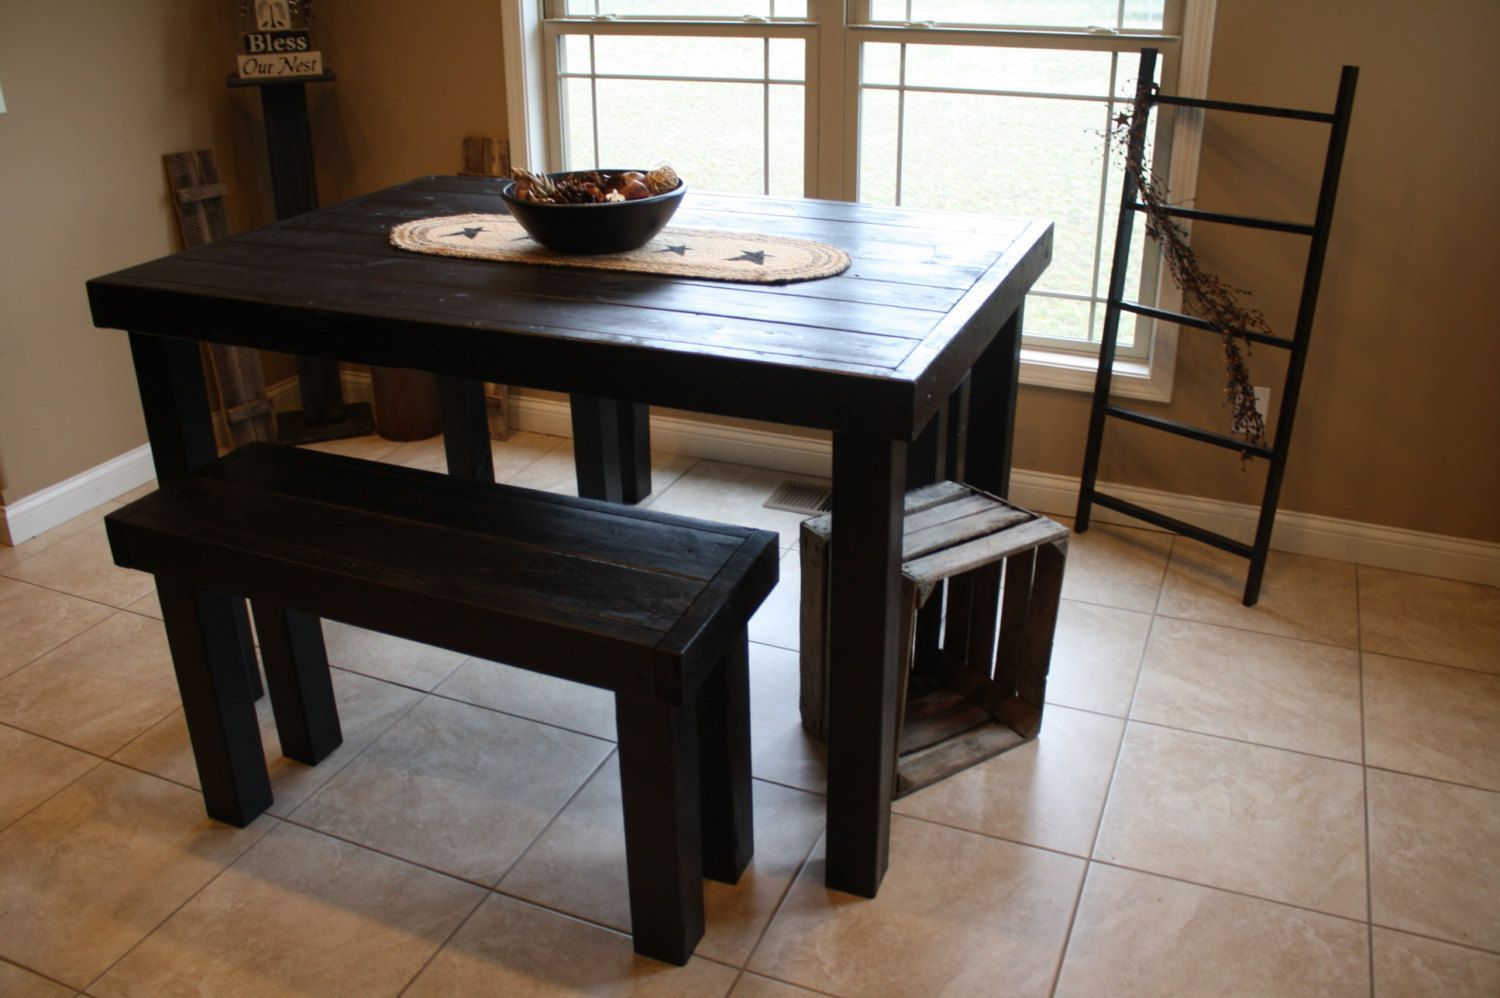 Beautiful Primitive Black Pub Style Tall Kitchen Table With Two Matching Benches Set Custom Mad Woodworking Furniture Plans Tall Kitchen Table Rustic Pub Table Tall kitchen table for two